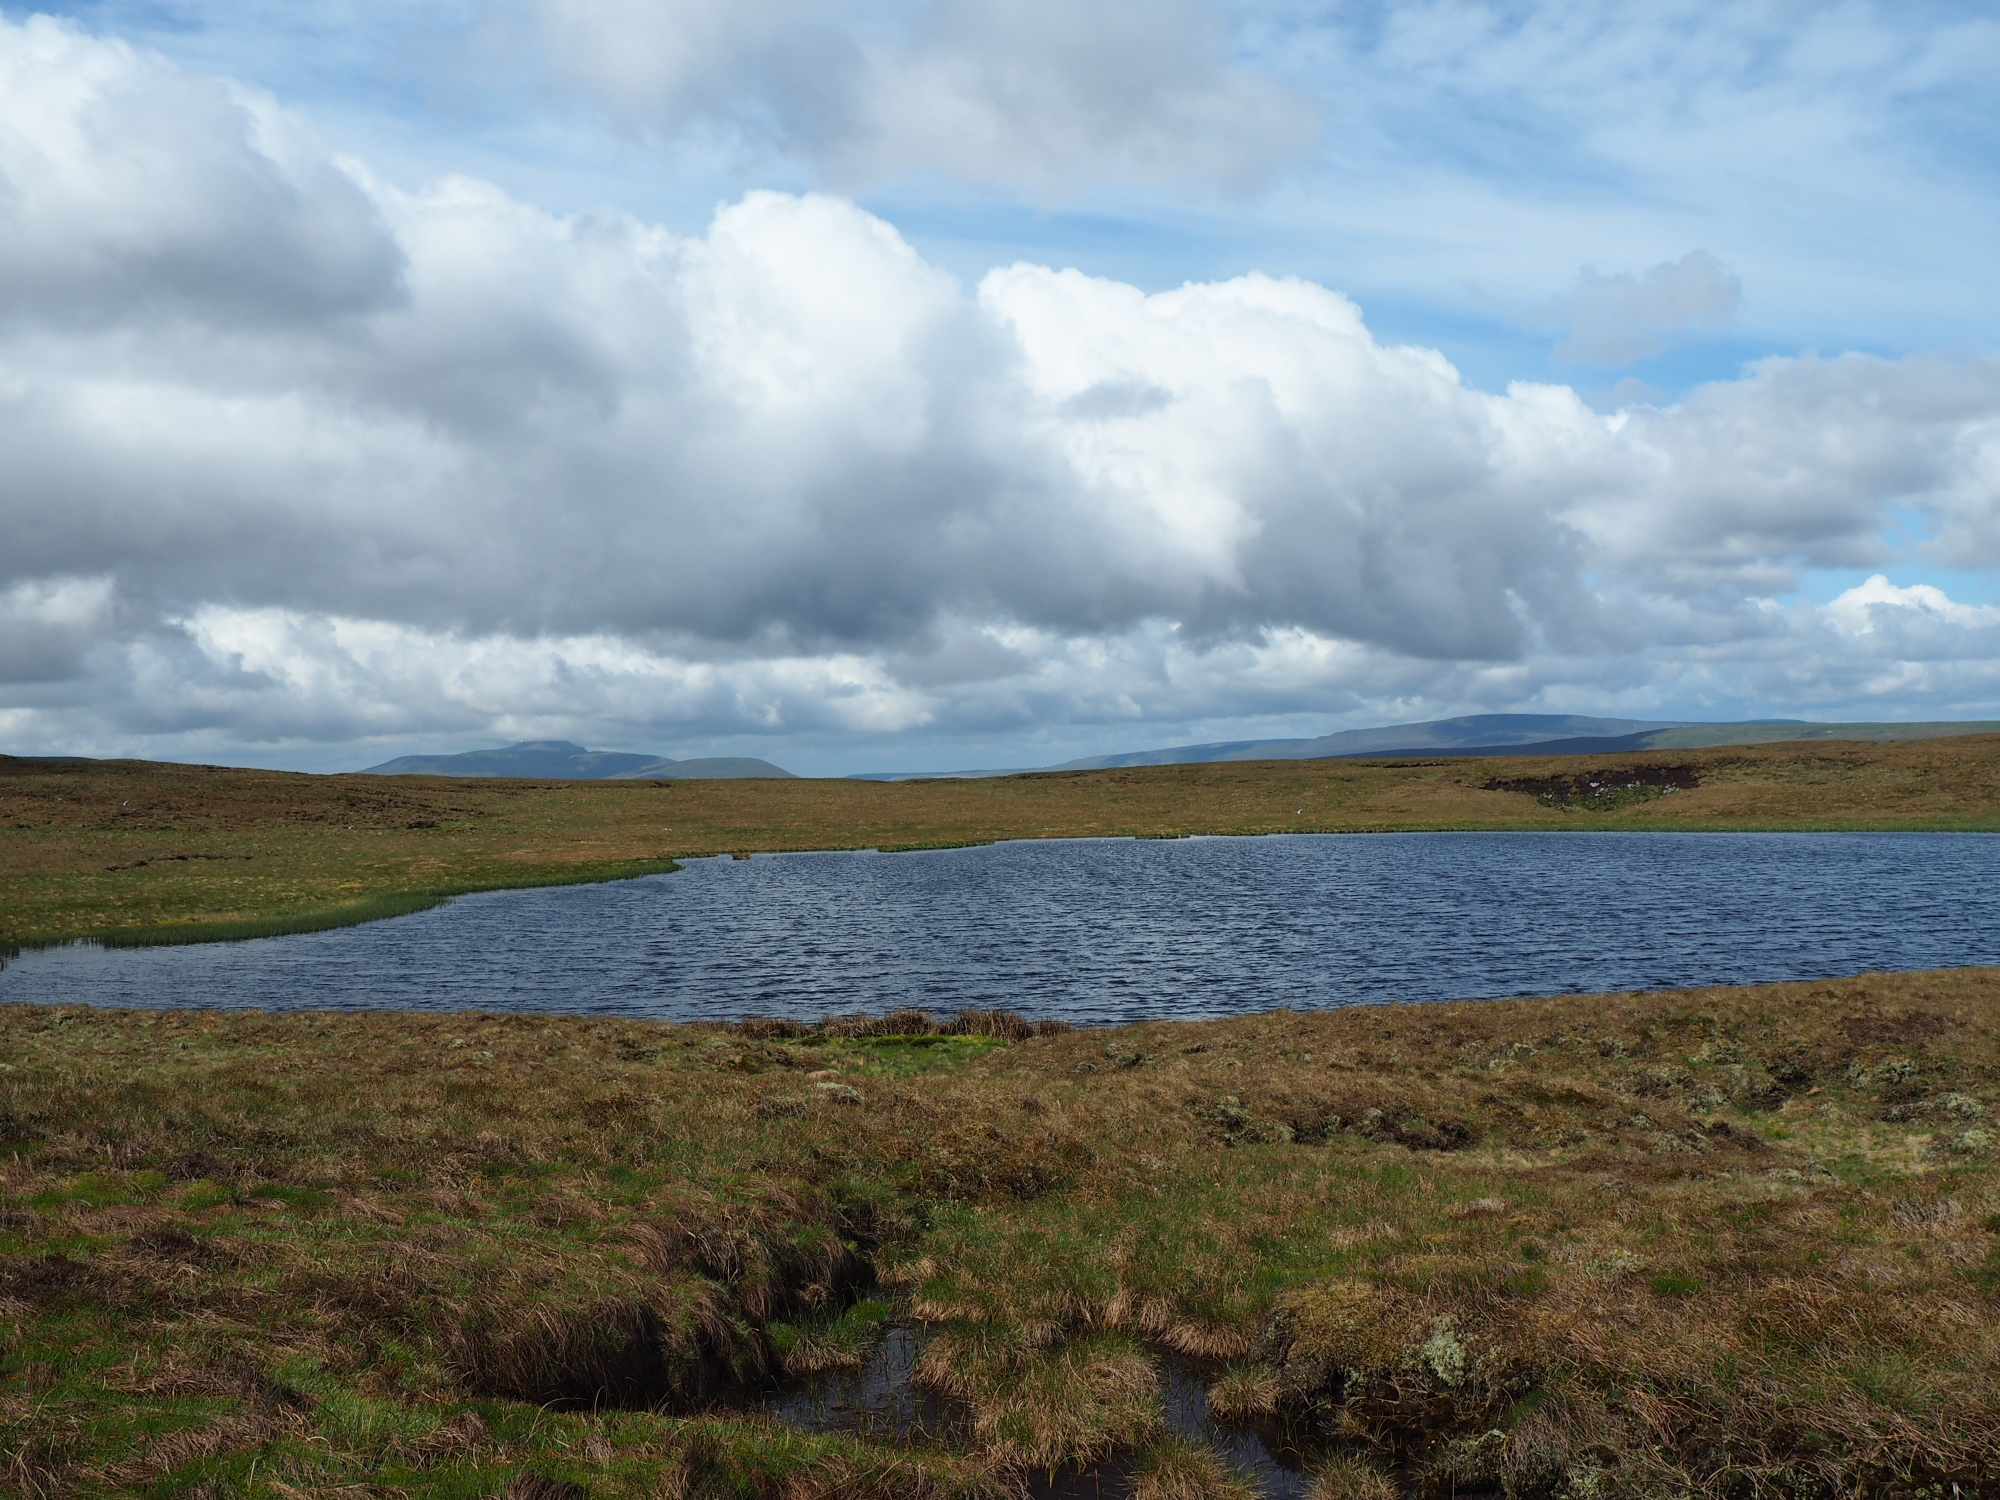 Oughtershaw Tarn